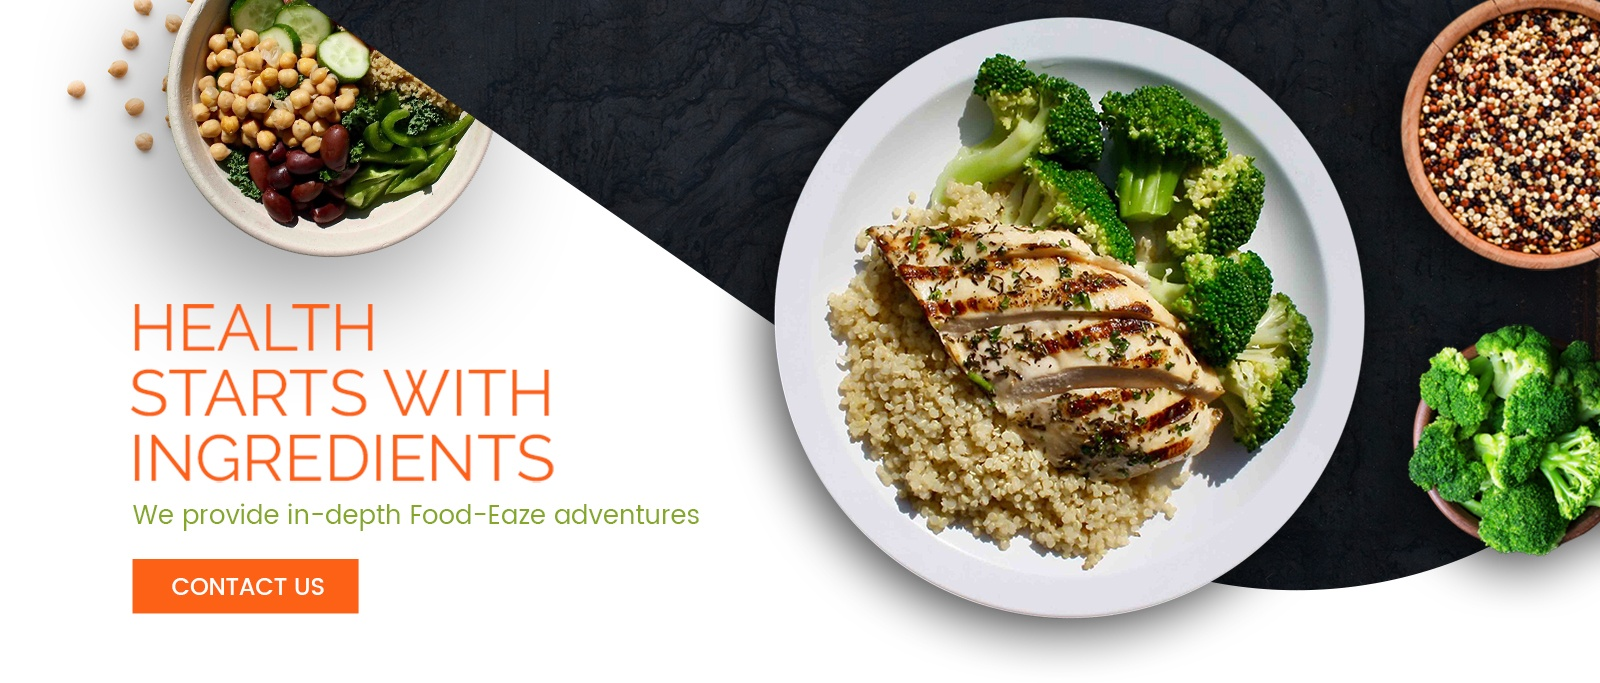 Health Starts With Ingredients - We provide in-depth Food-Eaze adventures